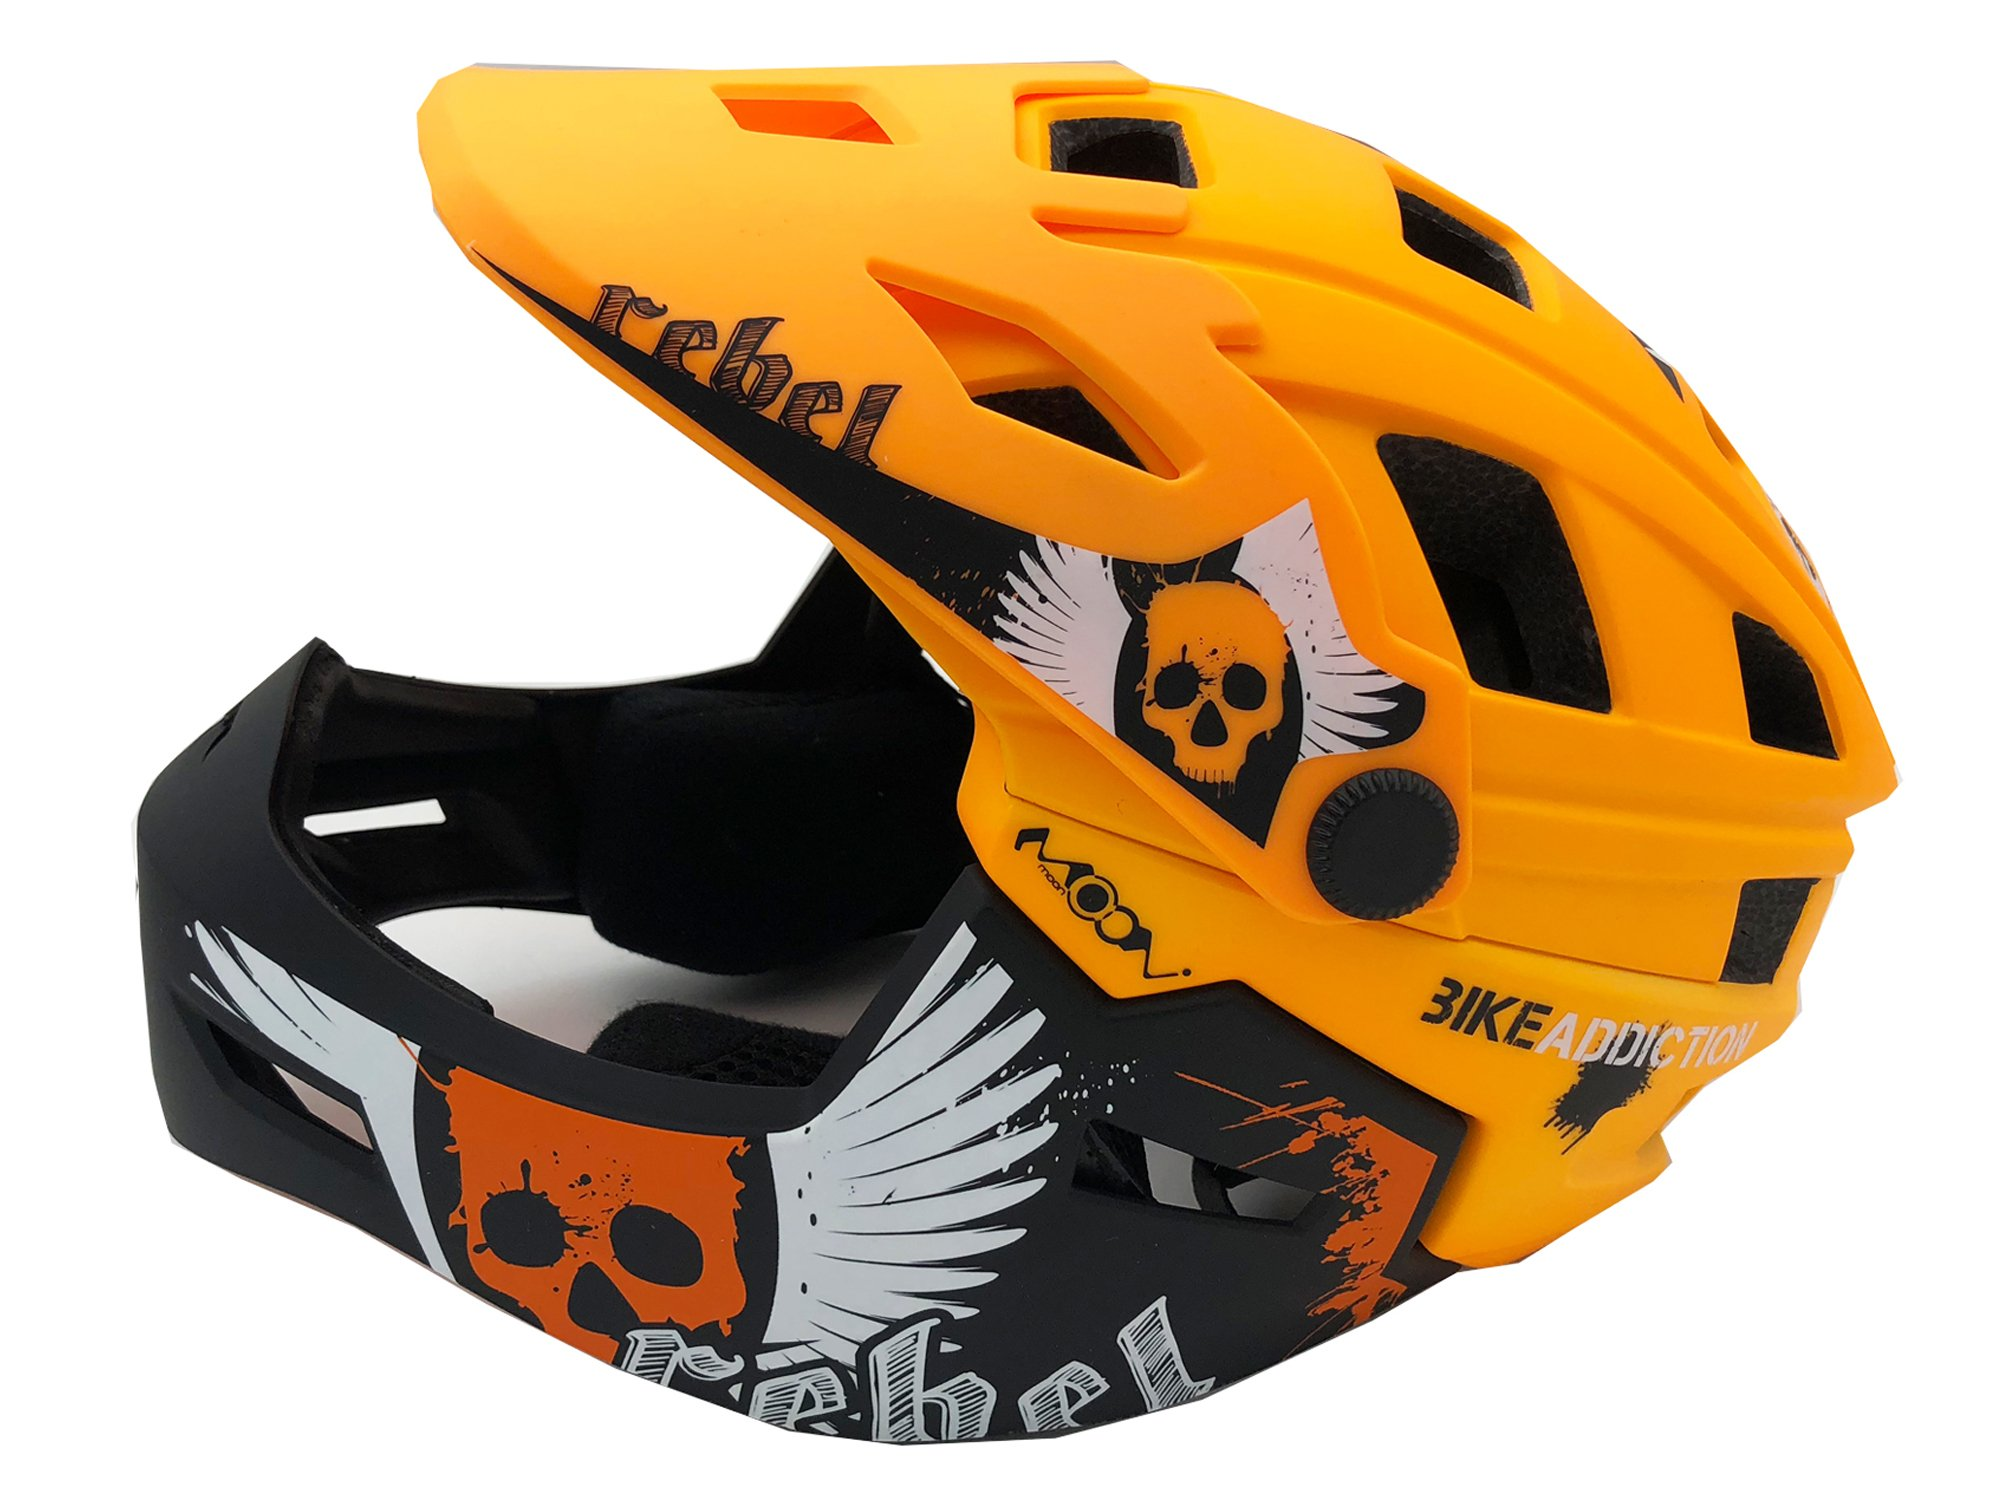 BeBeFun Brave BMX/Downhill Kids/Child 52-55cm for 3-7years Full Face Bicycls Helmet-Oange